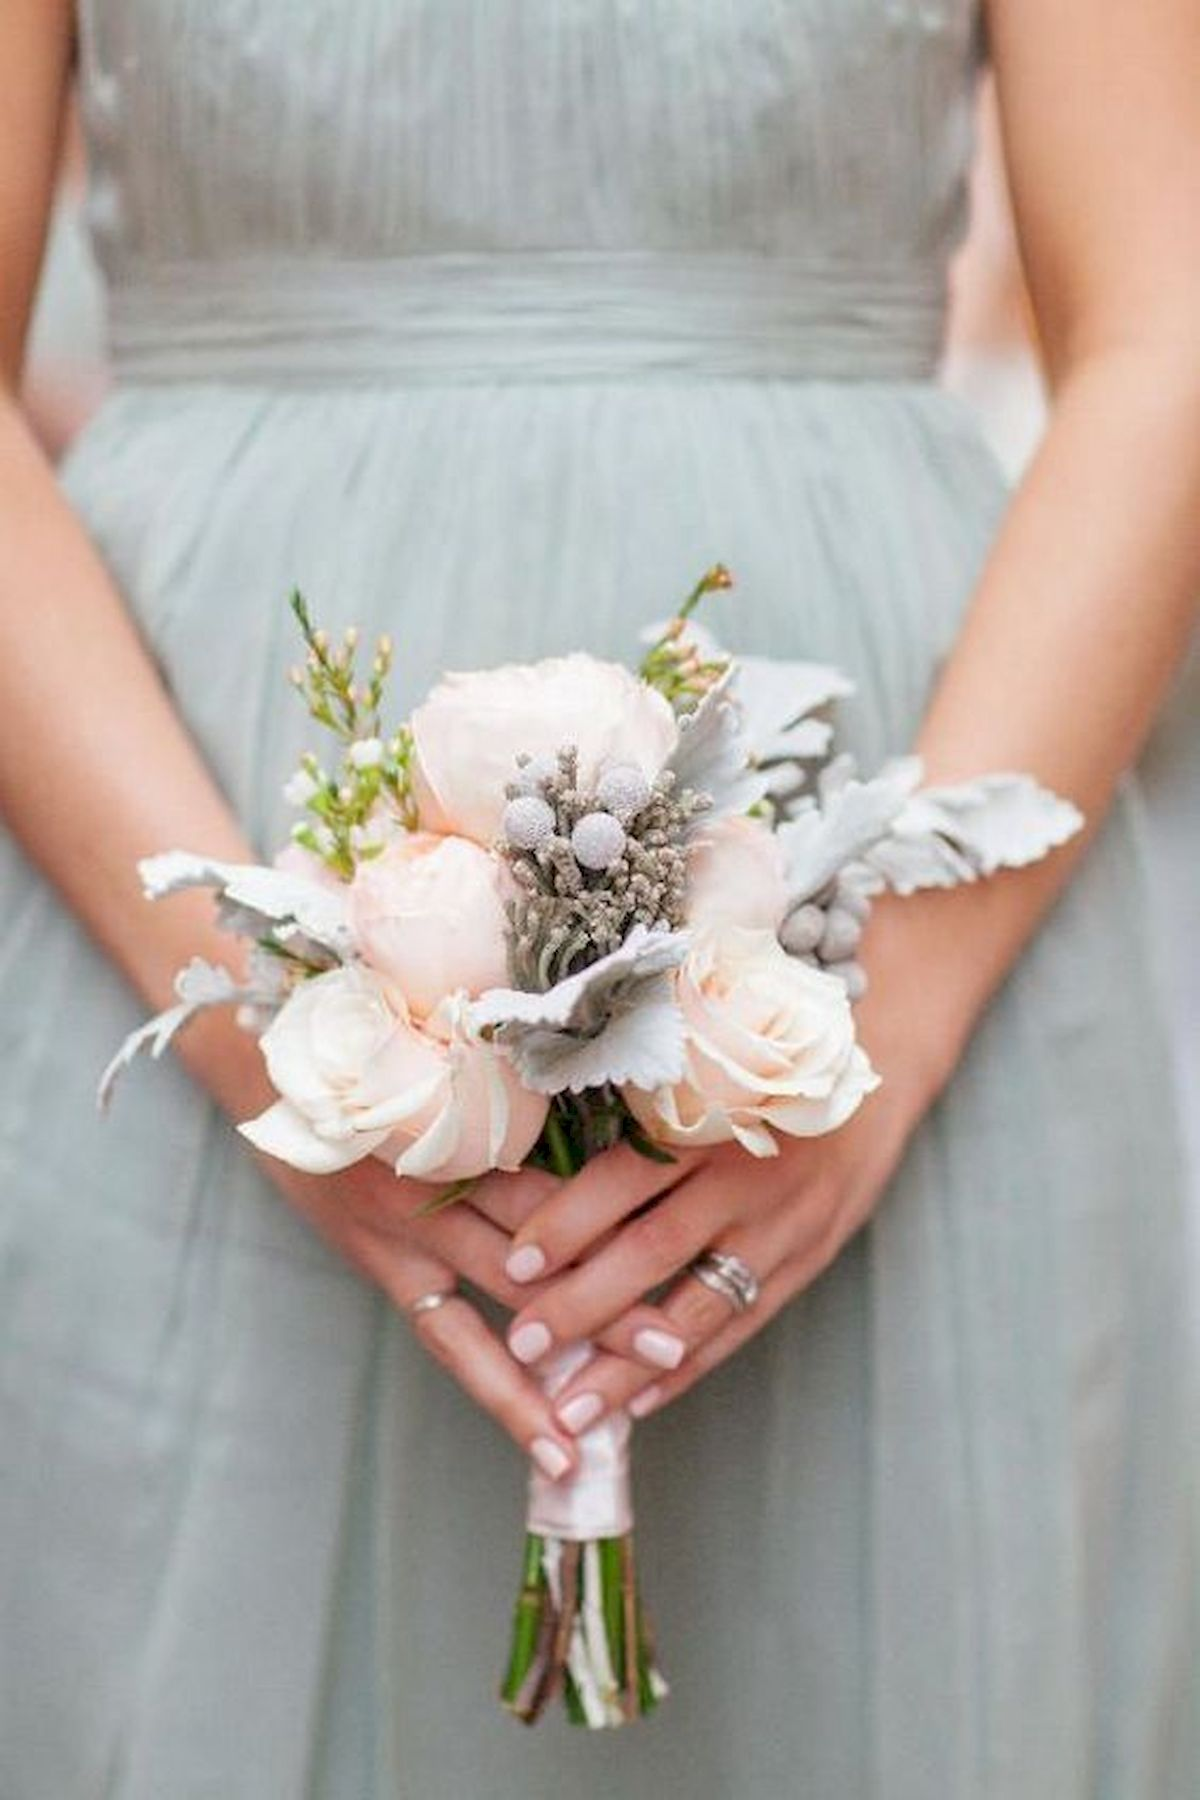 50 Beautiful Spring Bridesmaid Bouquets for Wedding Ideas #weddingbridesmaidbouquets